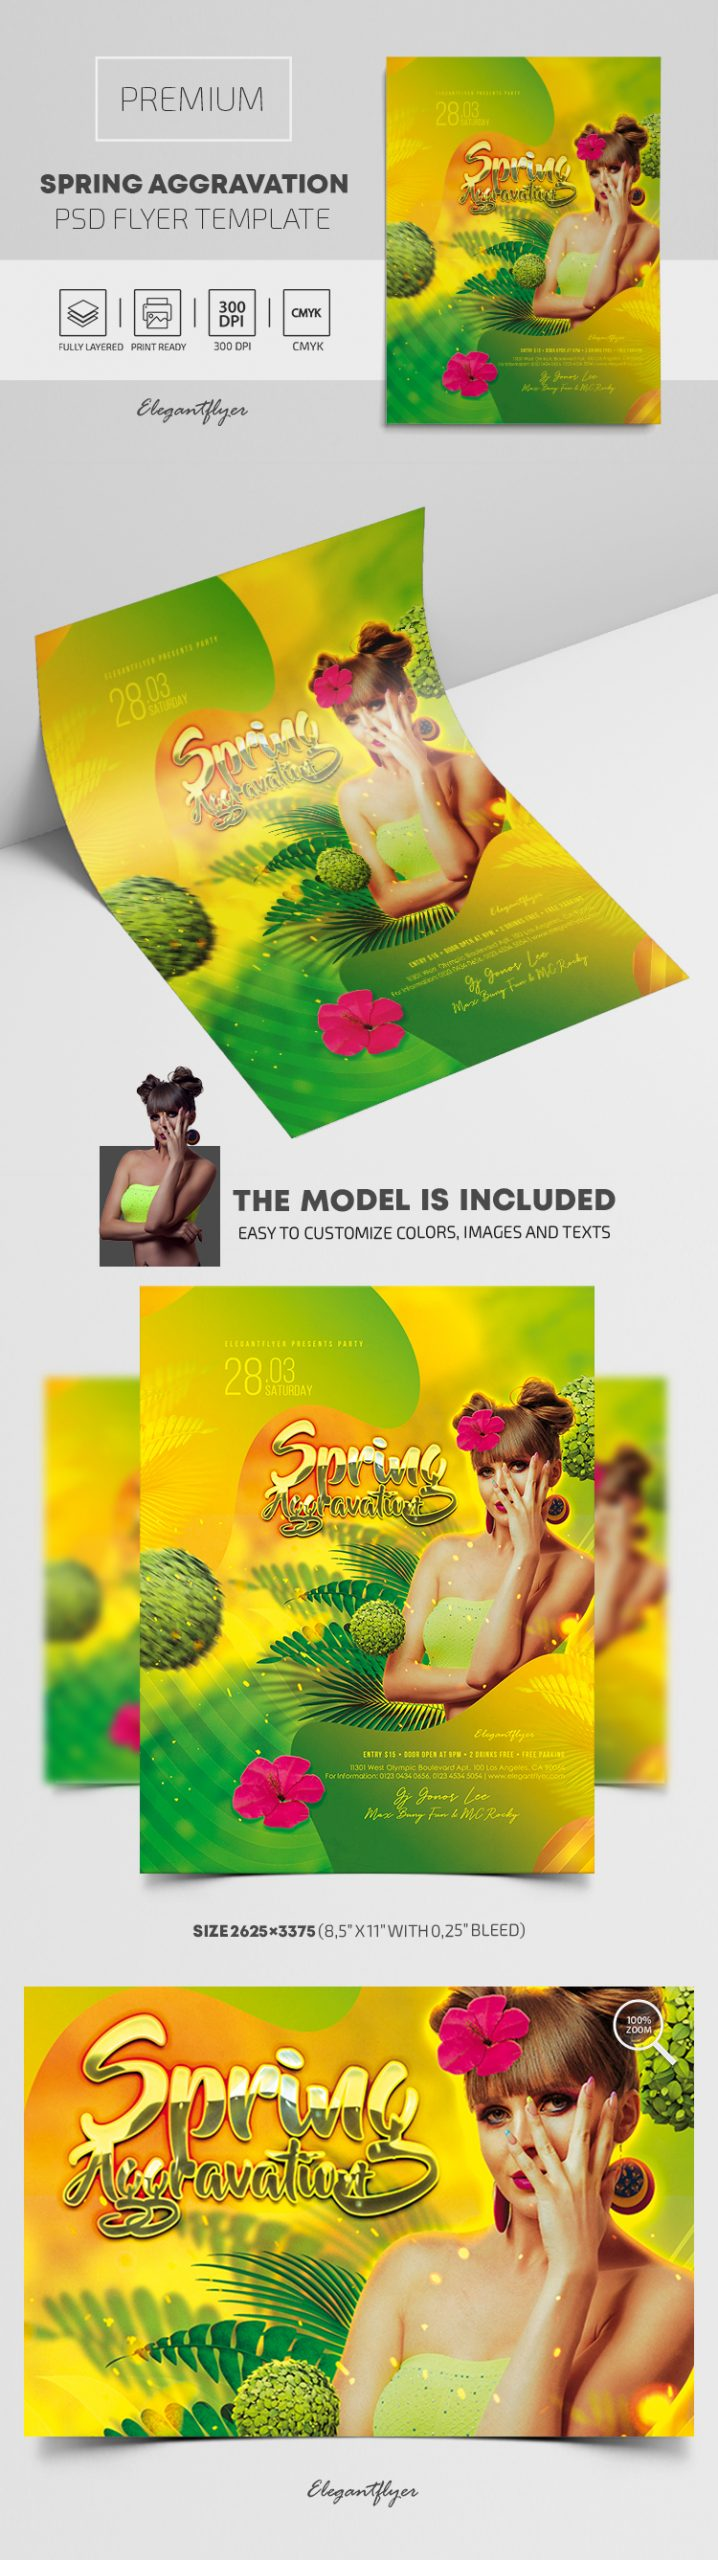 Spring Aggravation – Premium PSD Flyer Template